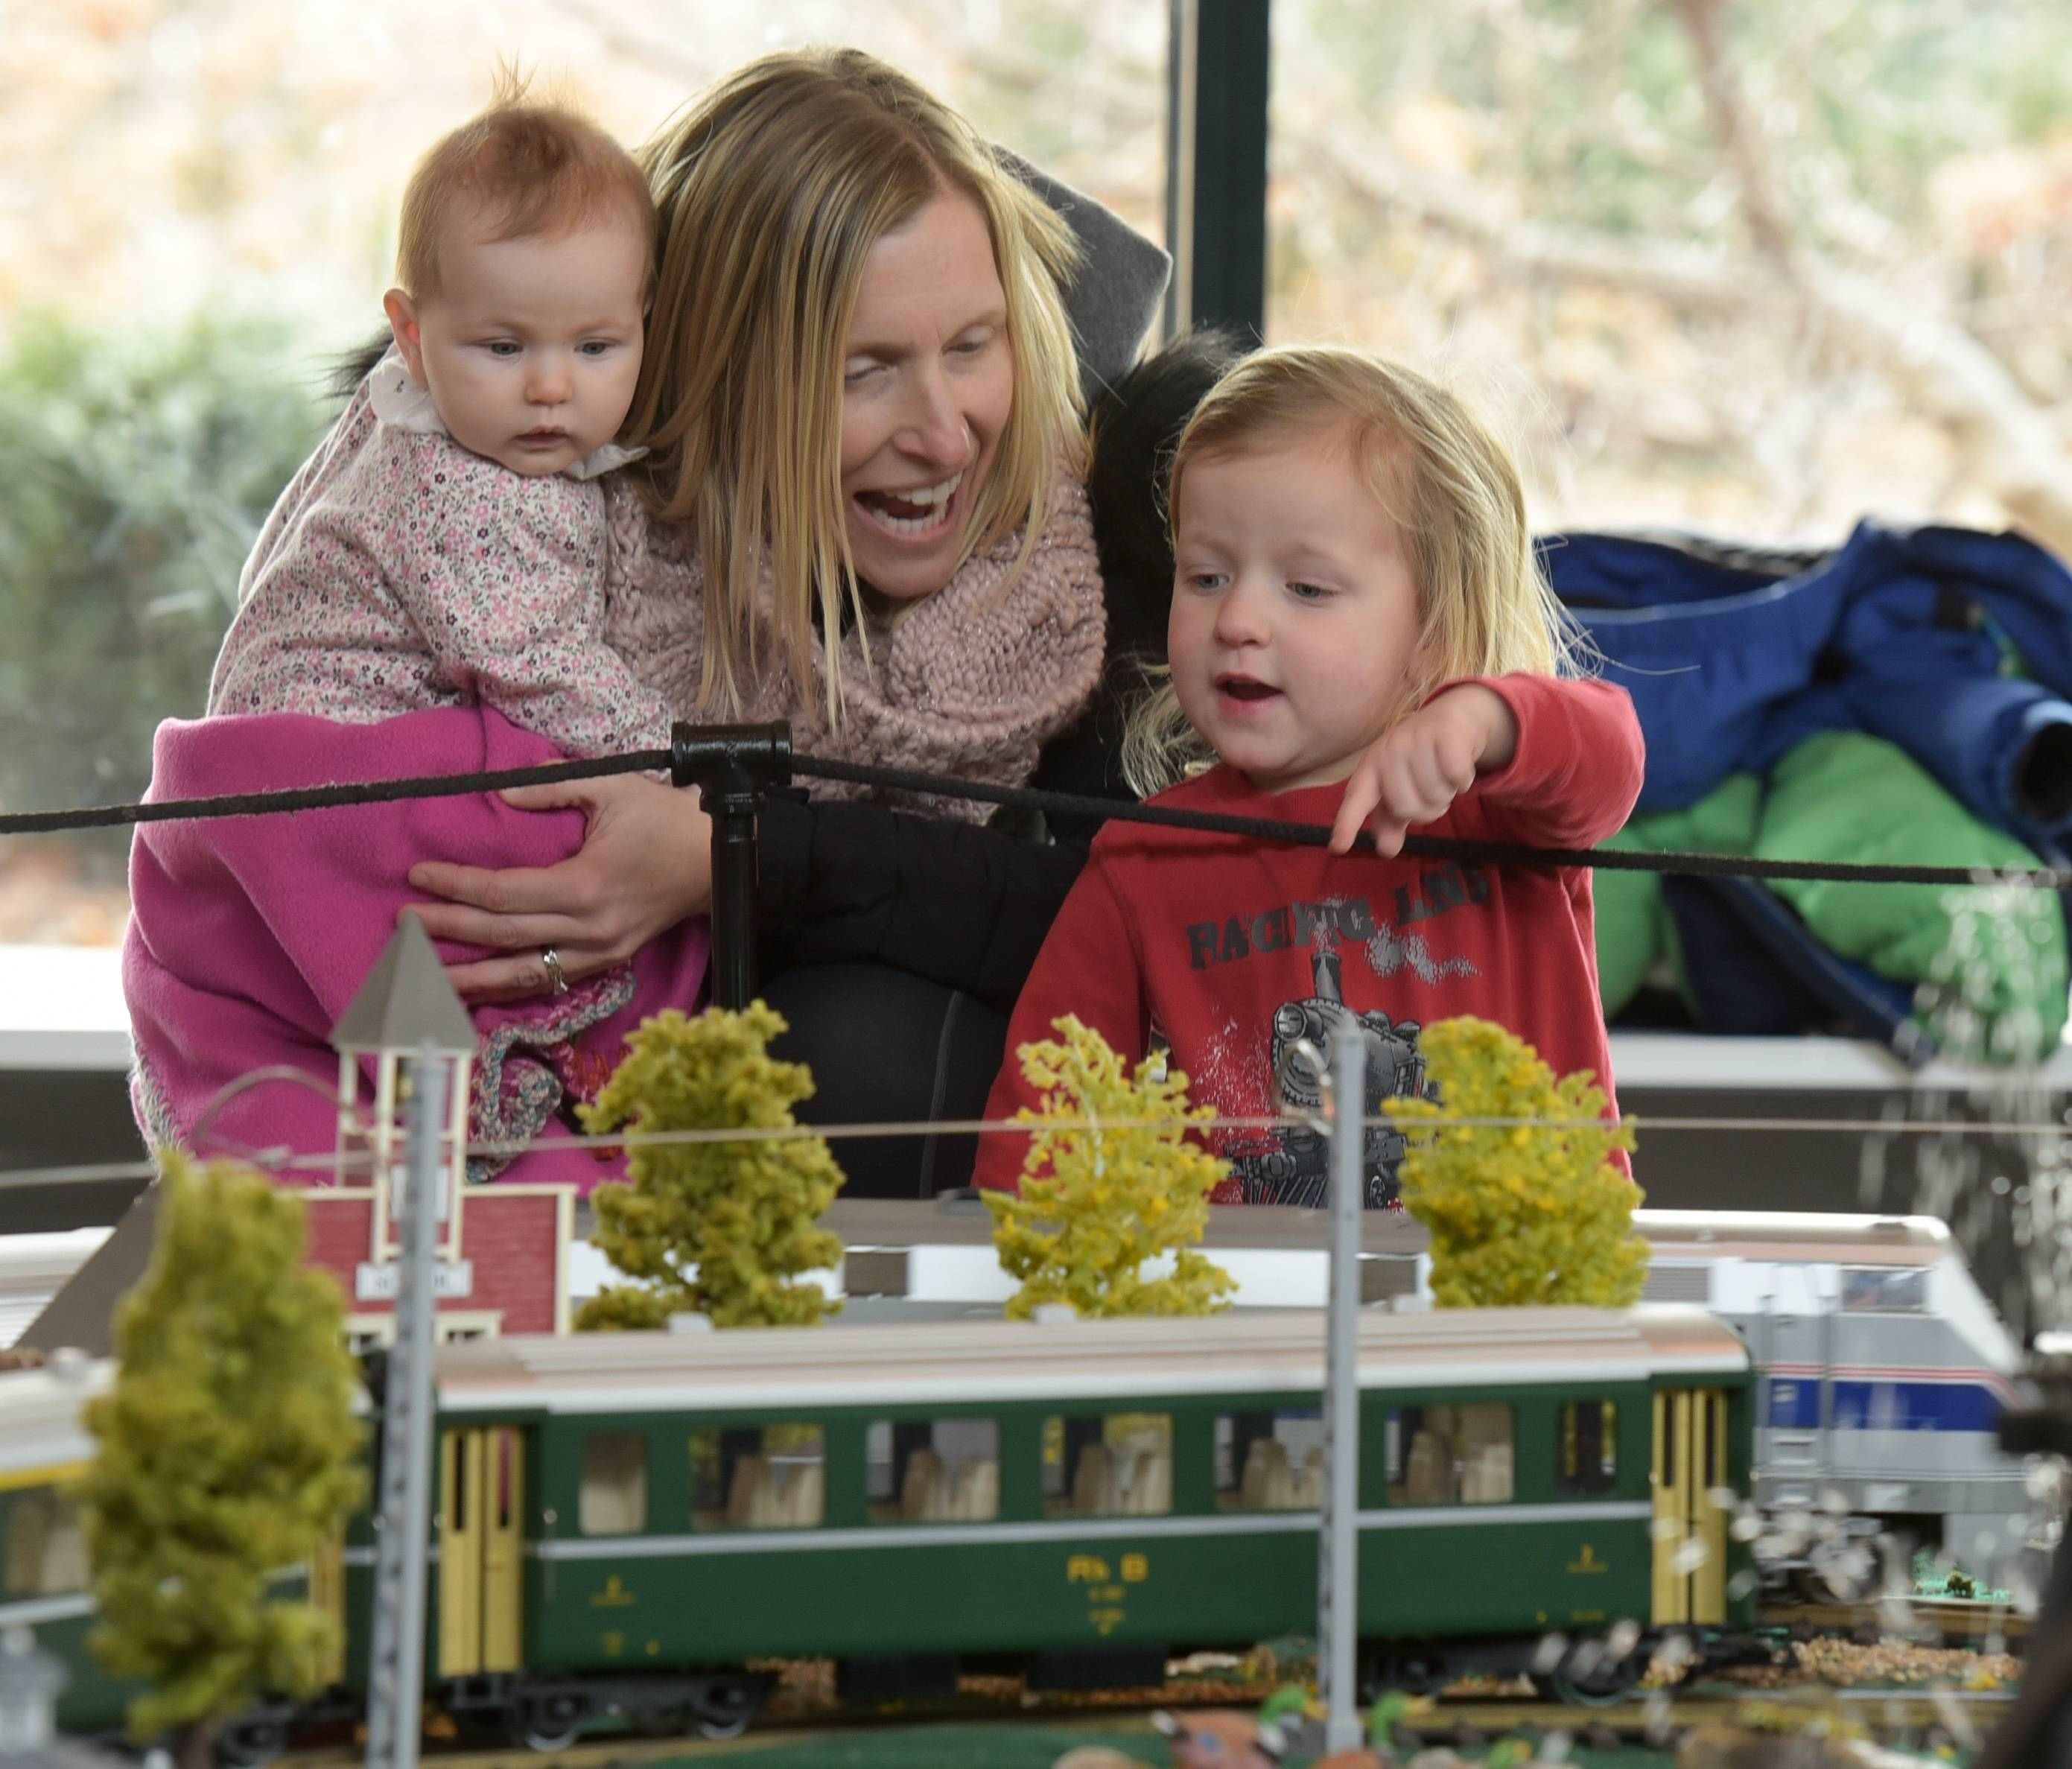 Valerie Guglielmi visits the Enchanted Railroad display at the Morton Arboretum in Lisle with her daughter Lydia, 5 months, and son Henry, 4.